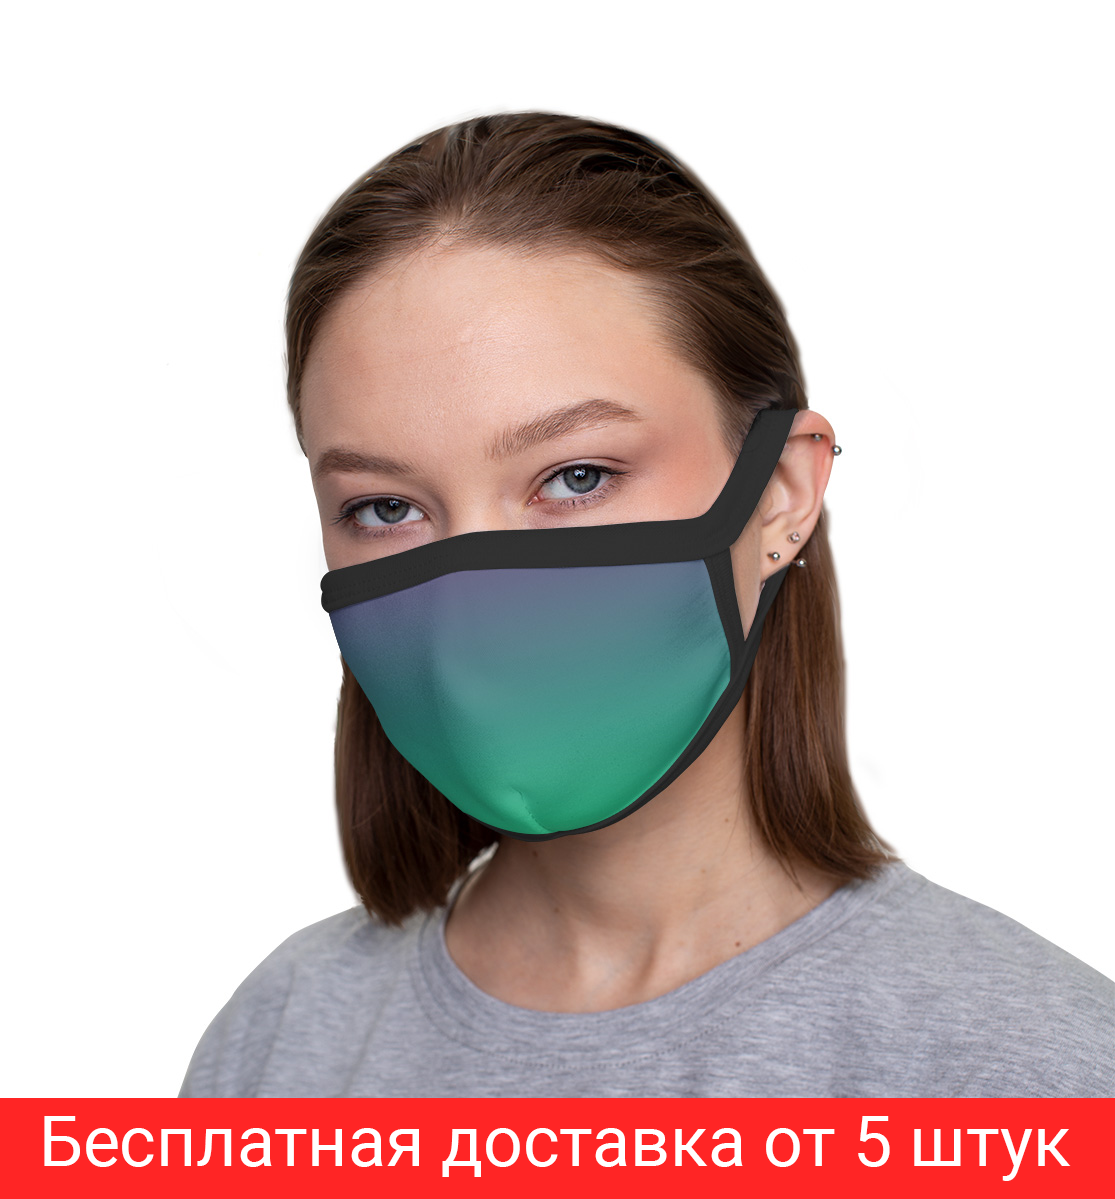 Mask Protective Canvas Stylish Trend Cool Accessory, Anti Dust And Viruses